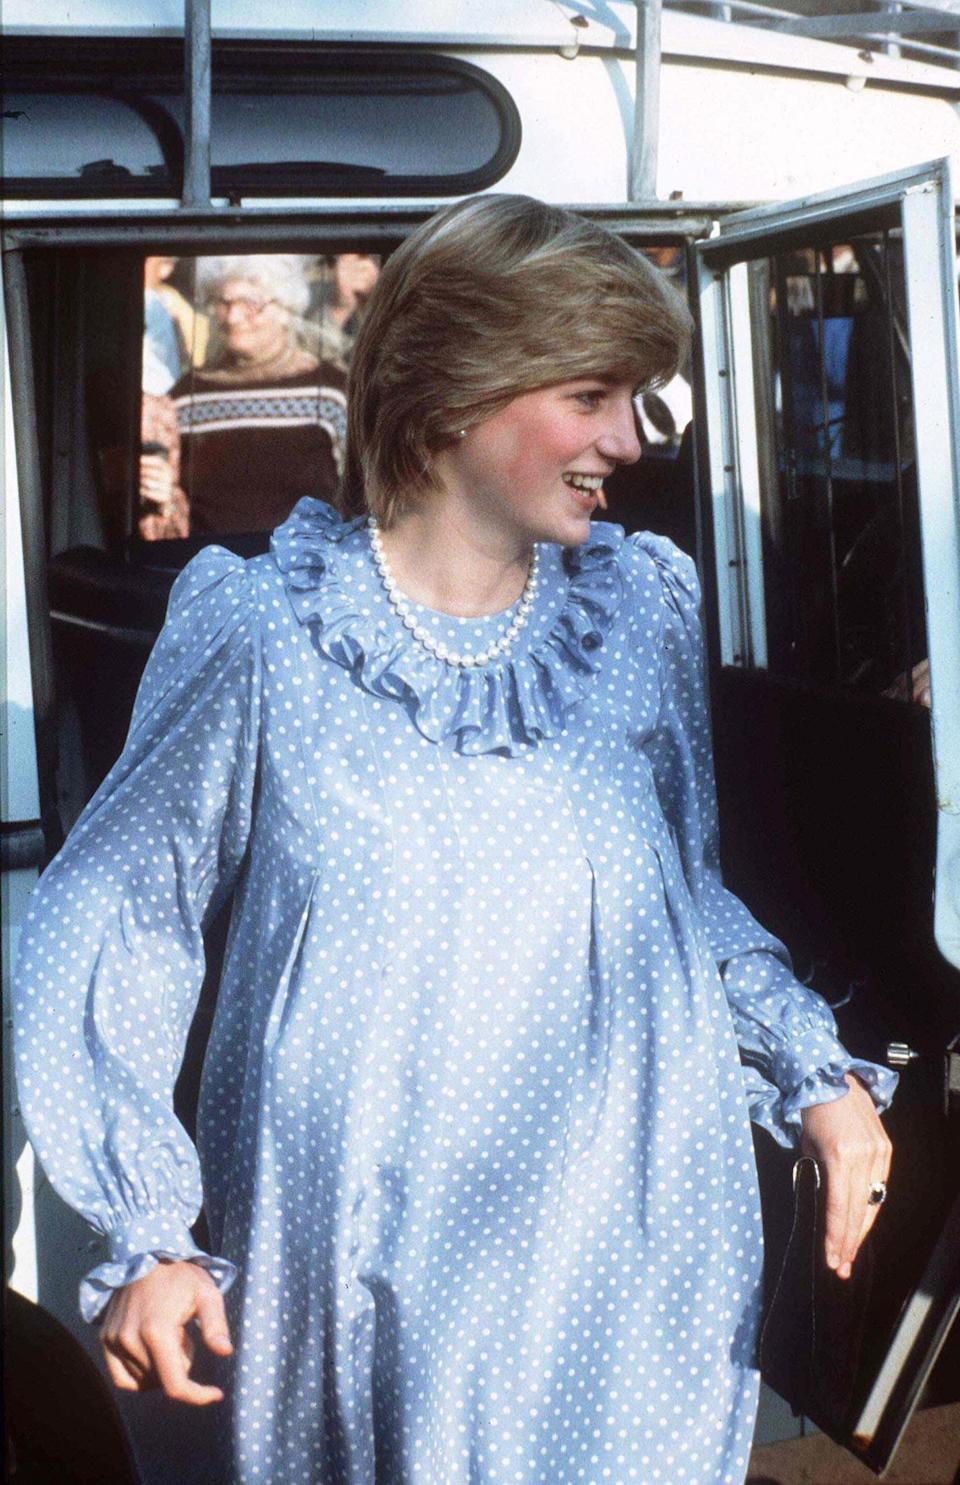 <p>The Princess of Wales wears a polka-dot maxi dress while seven months pregnant in the Isles of Scilly, U.K., in April 1984. (Photo: Getty Images) </p>